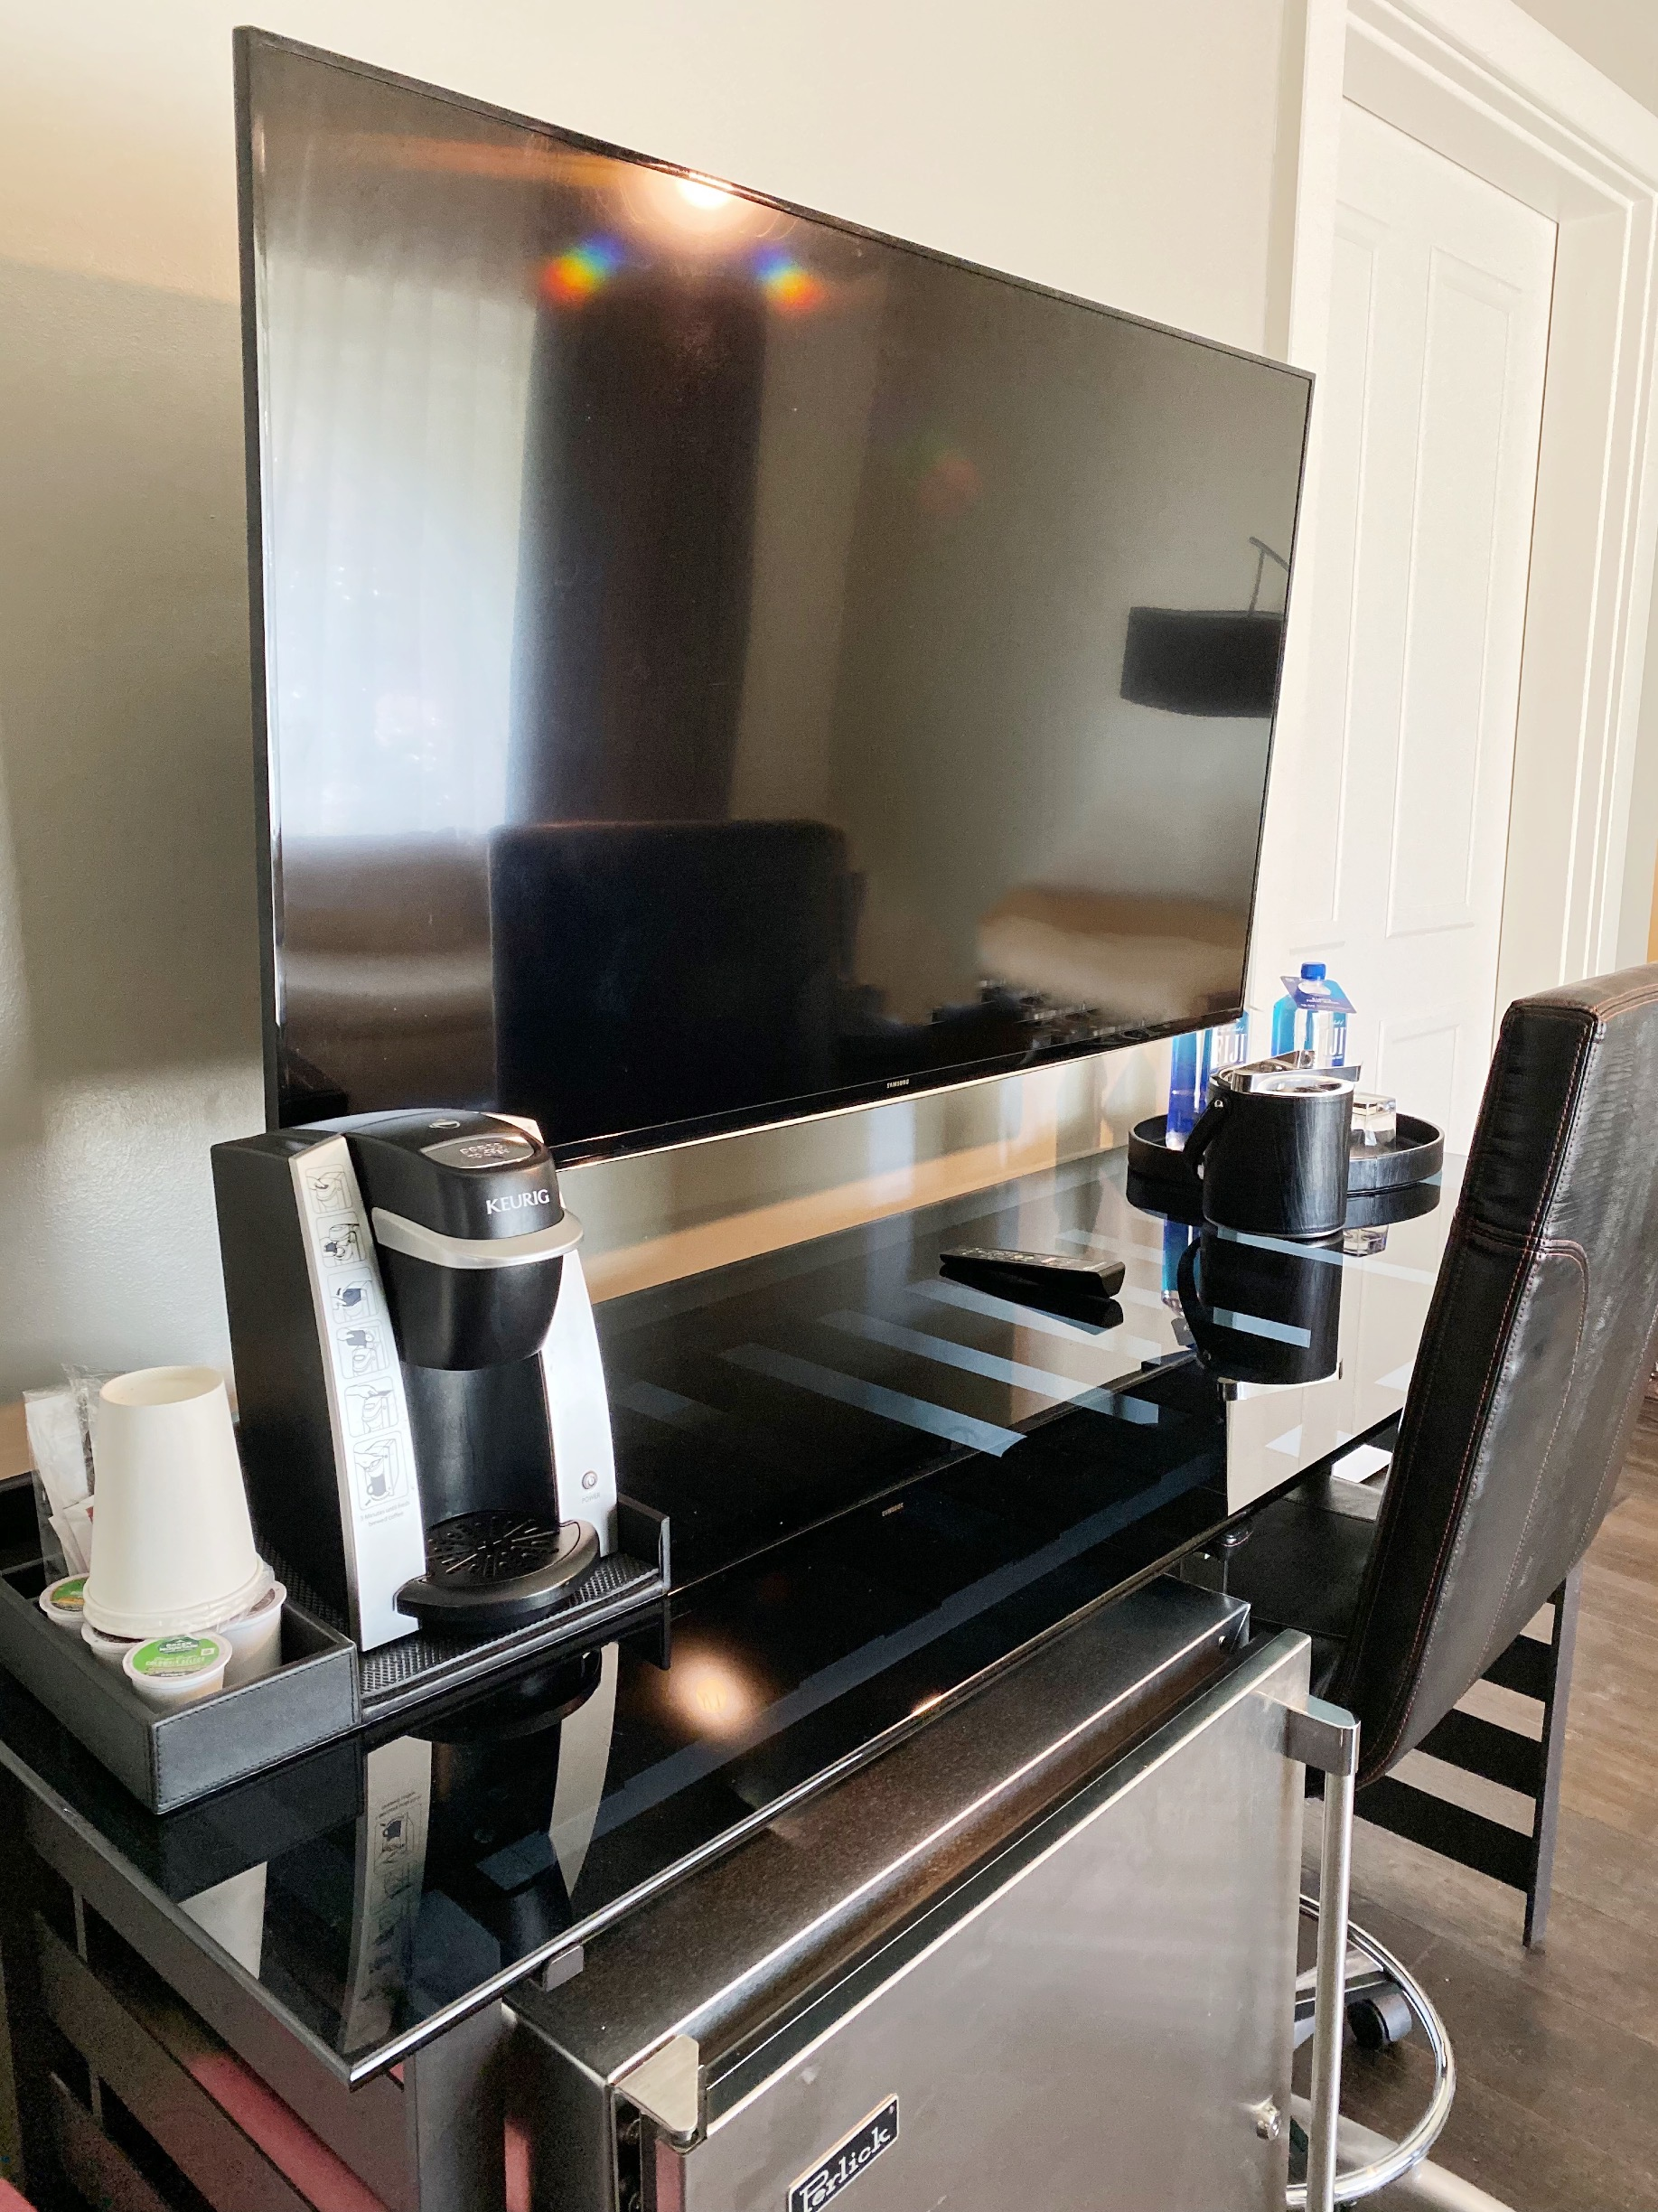 A review of my stay at the Union Station Hotel in Nashville